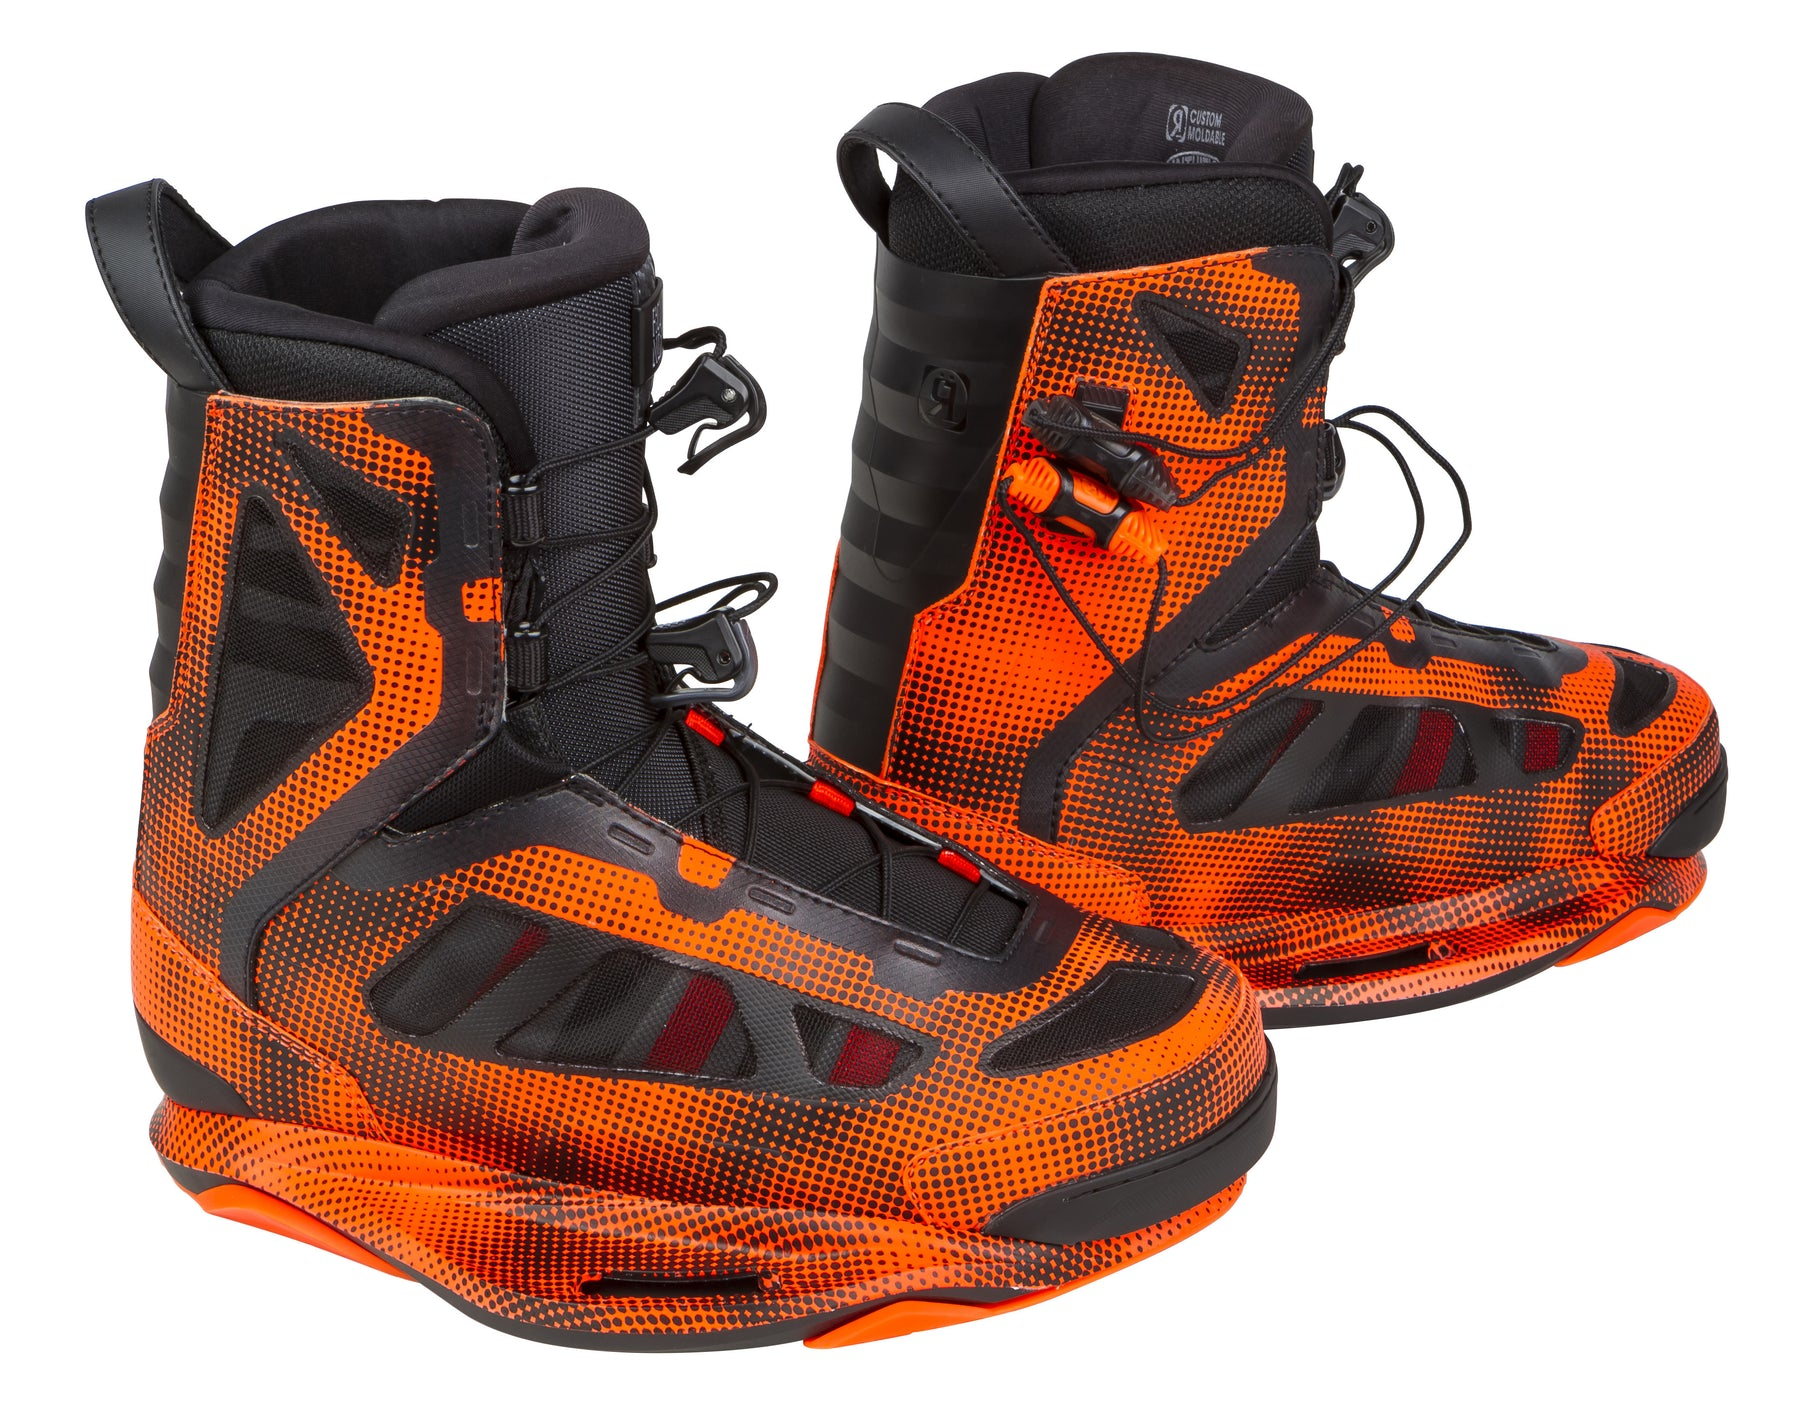 Shop Ronix Parks Wakeboard Bindings at 88 Gear